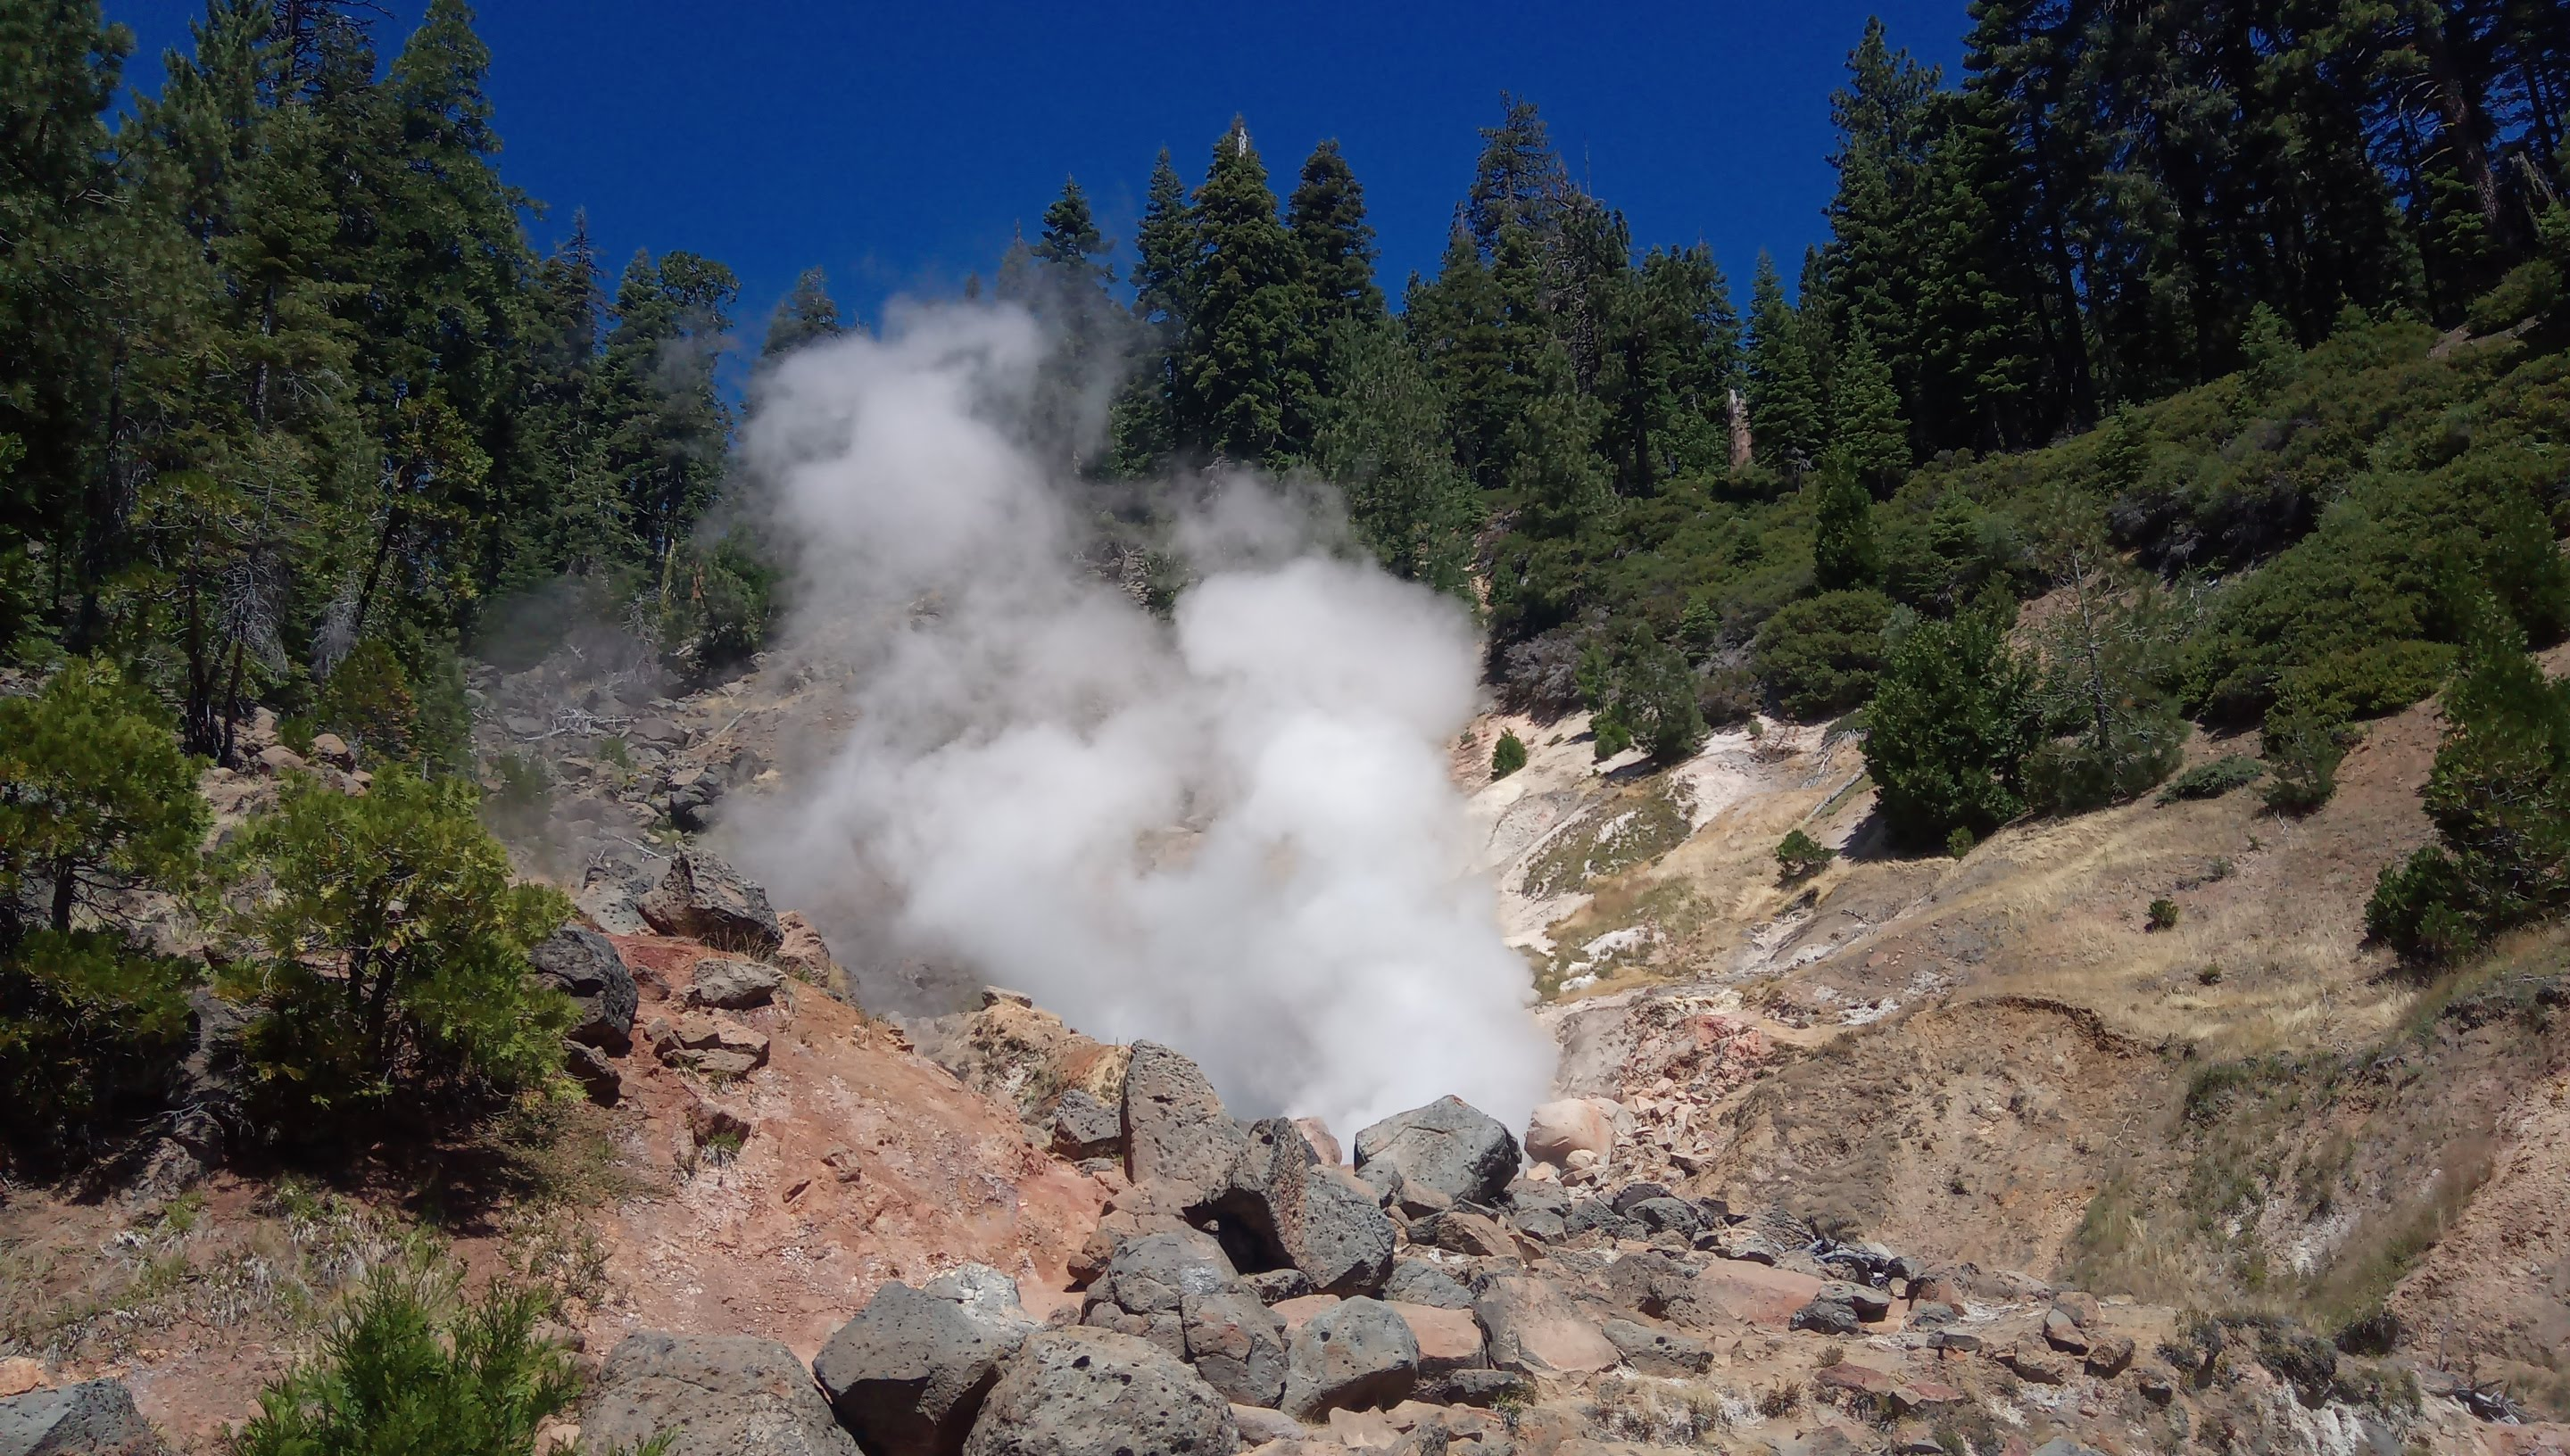 Three days in Lassen - Part 3, Terminal Geyser 2020-07-05